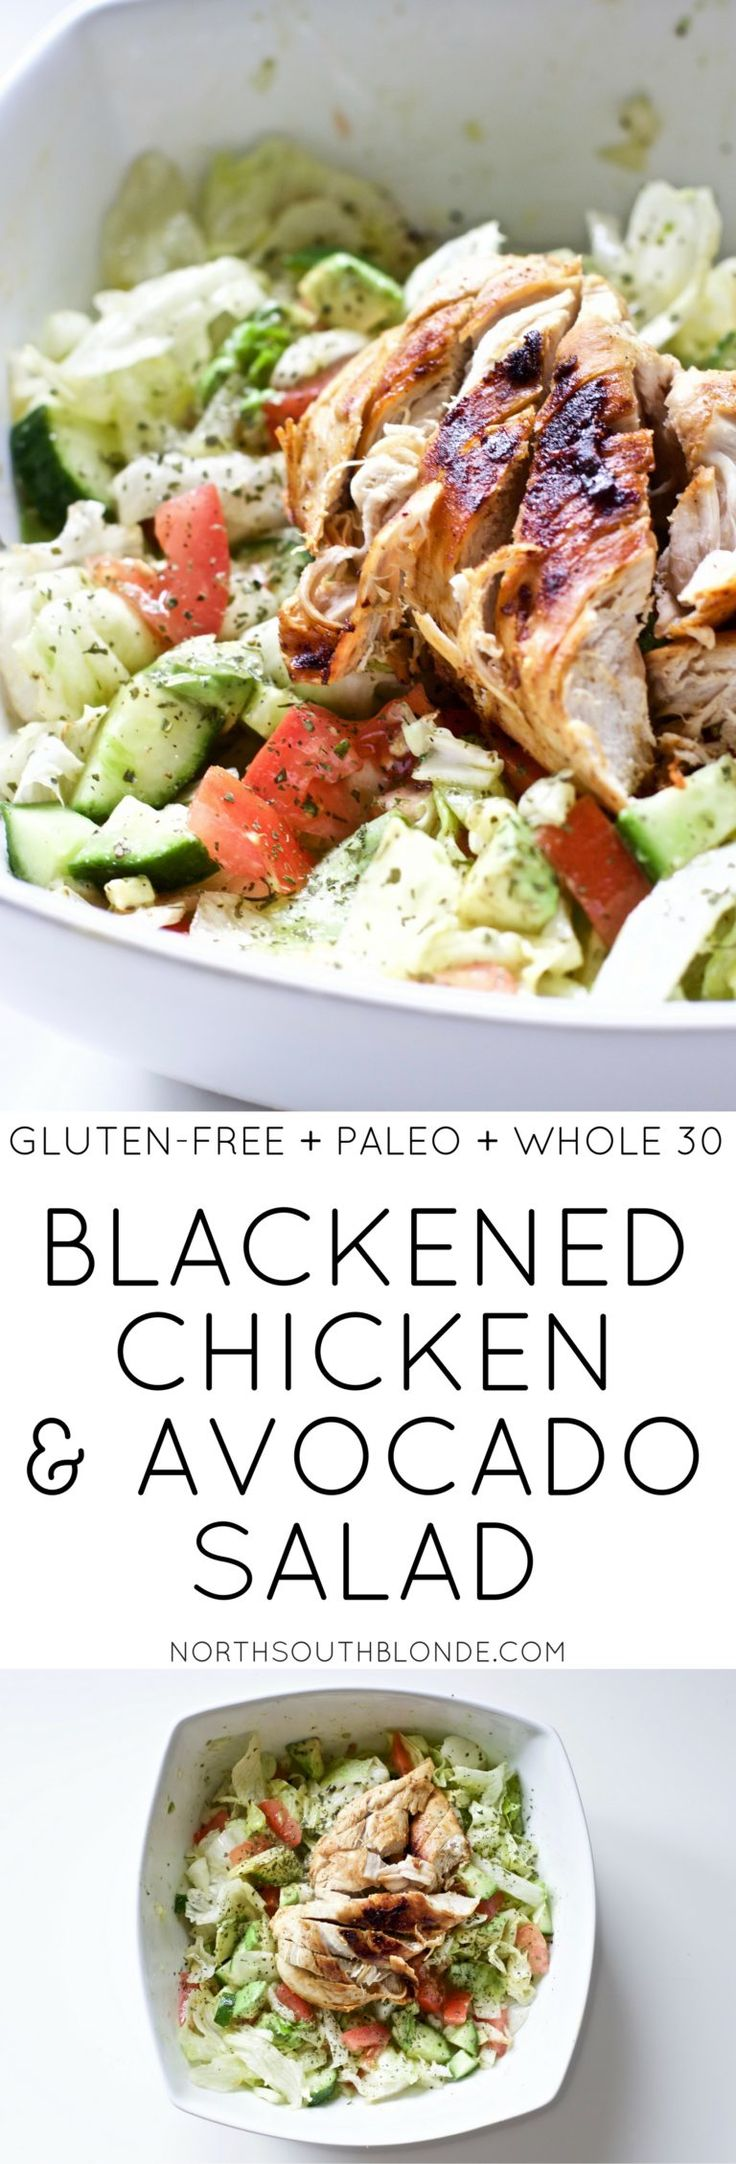 4908 best Keto Meals images on Pinterest   Low carb recipes, Keto ...